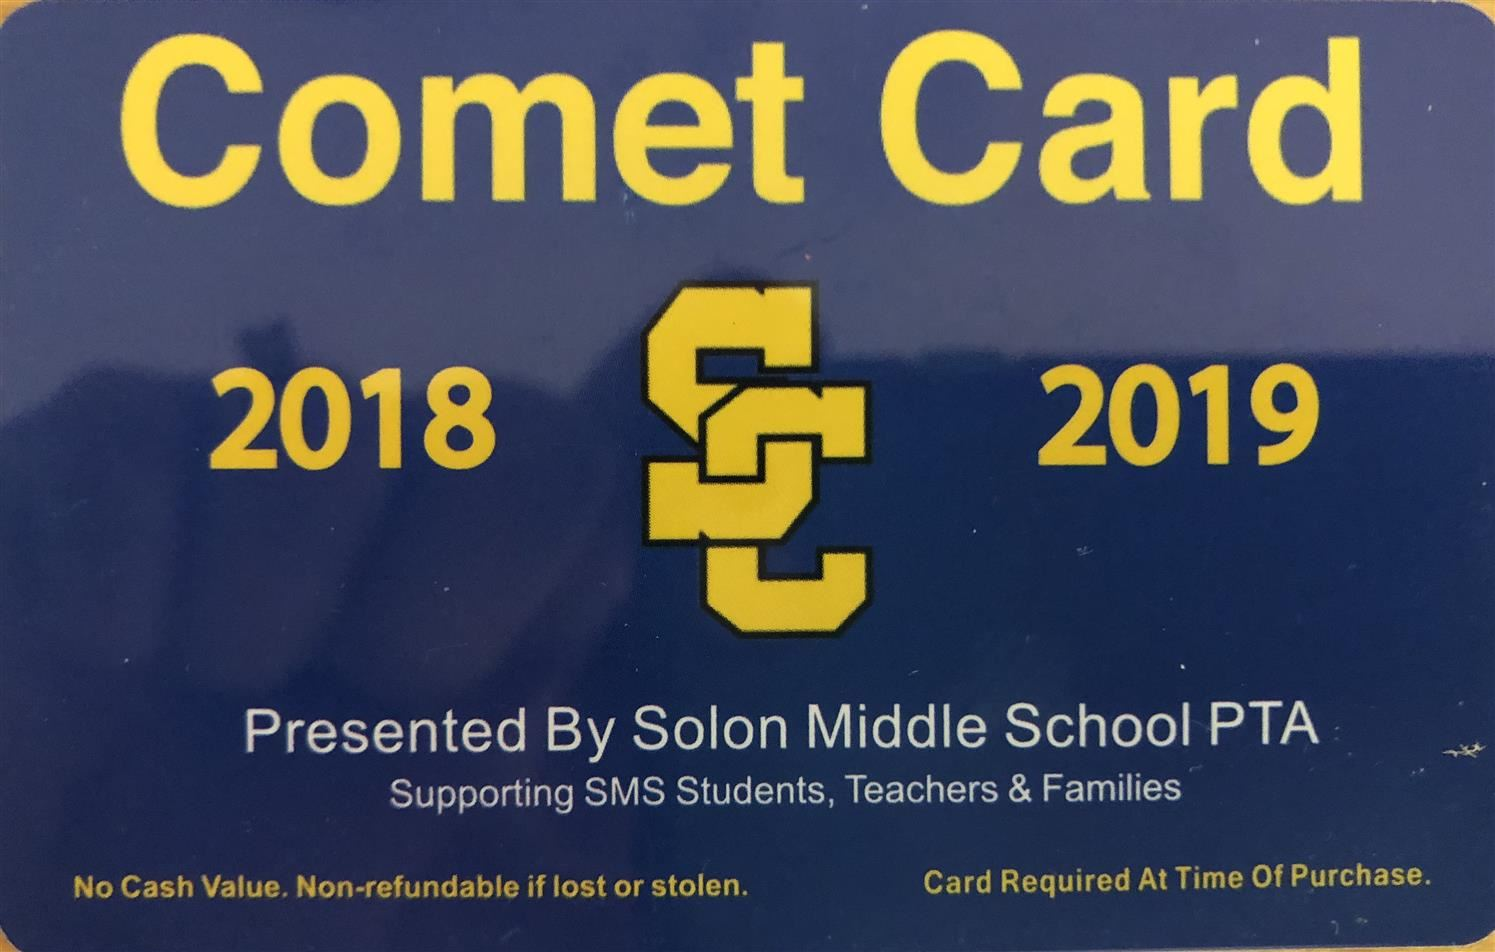 Front of the 2018-19 Comet Card - yellow text on blue background